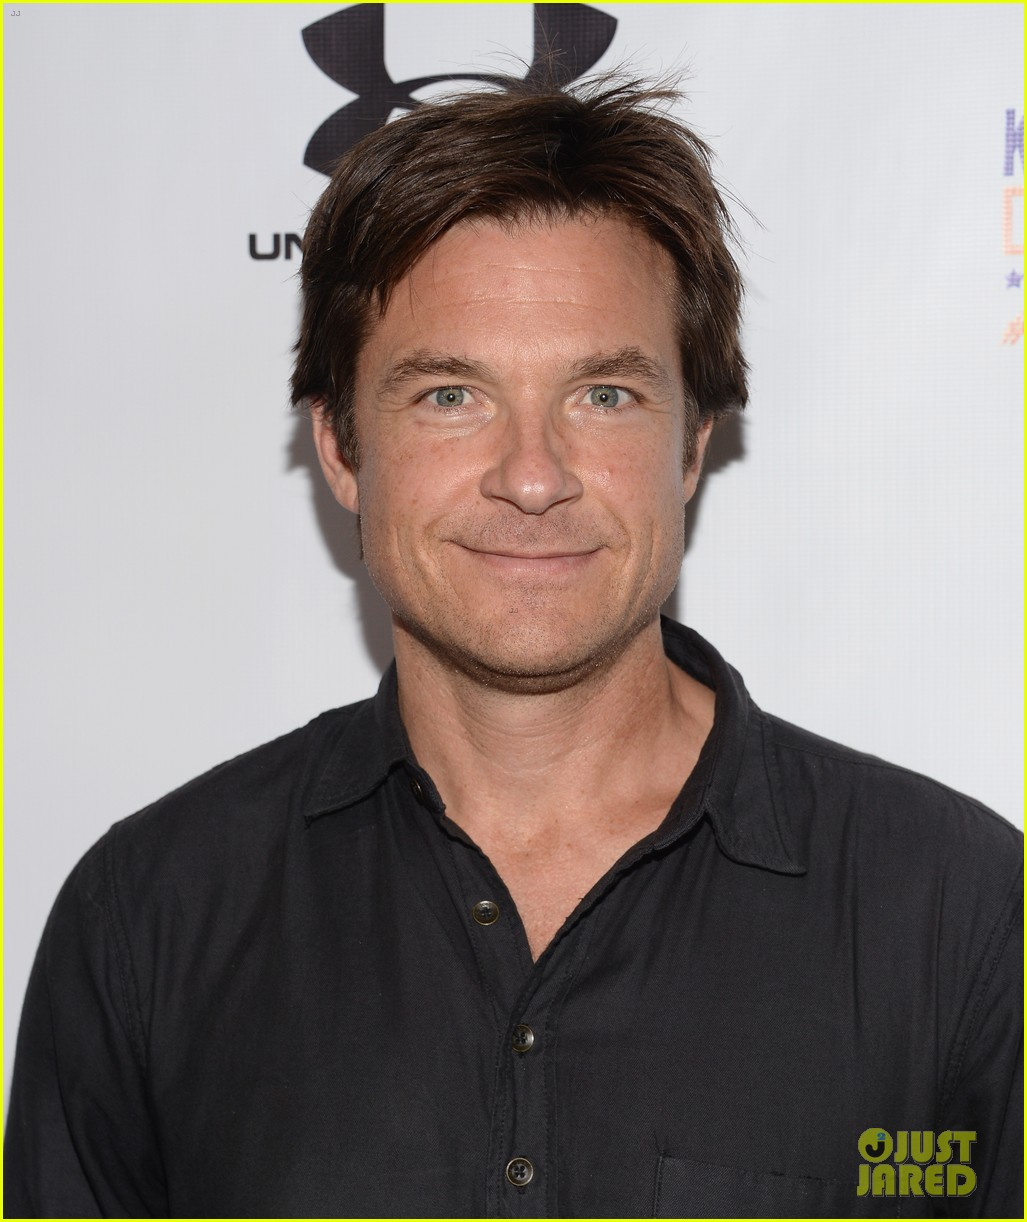 jason bateman kershaws ping pong 4 purpose charity event 142940538